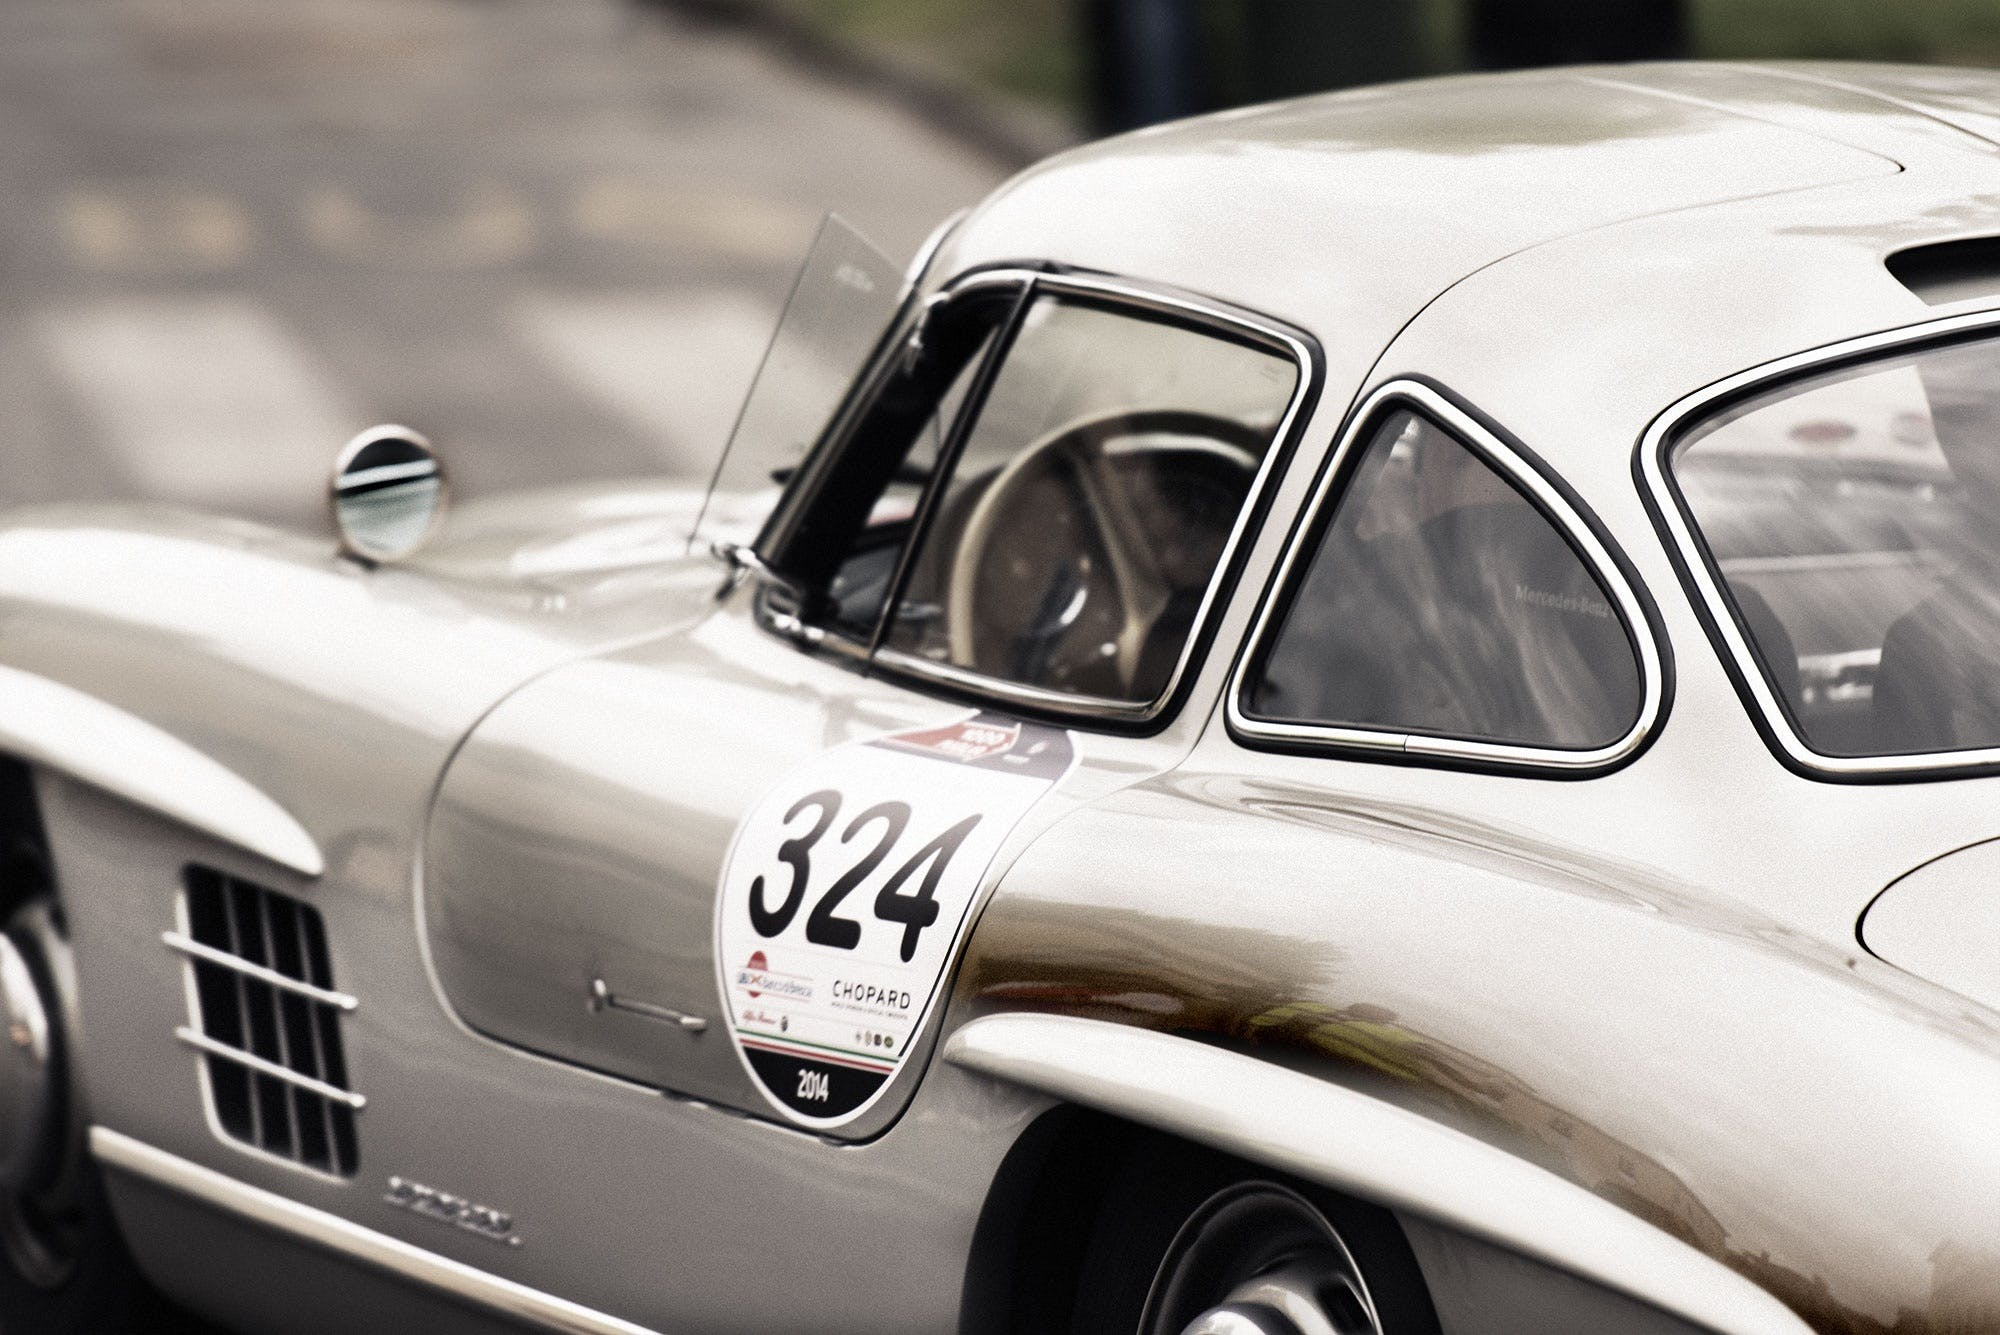 White and Gray Vintage Sports Car